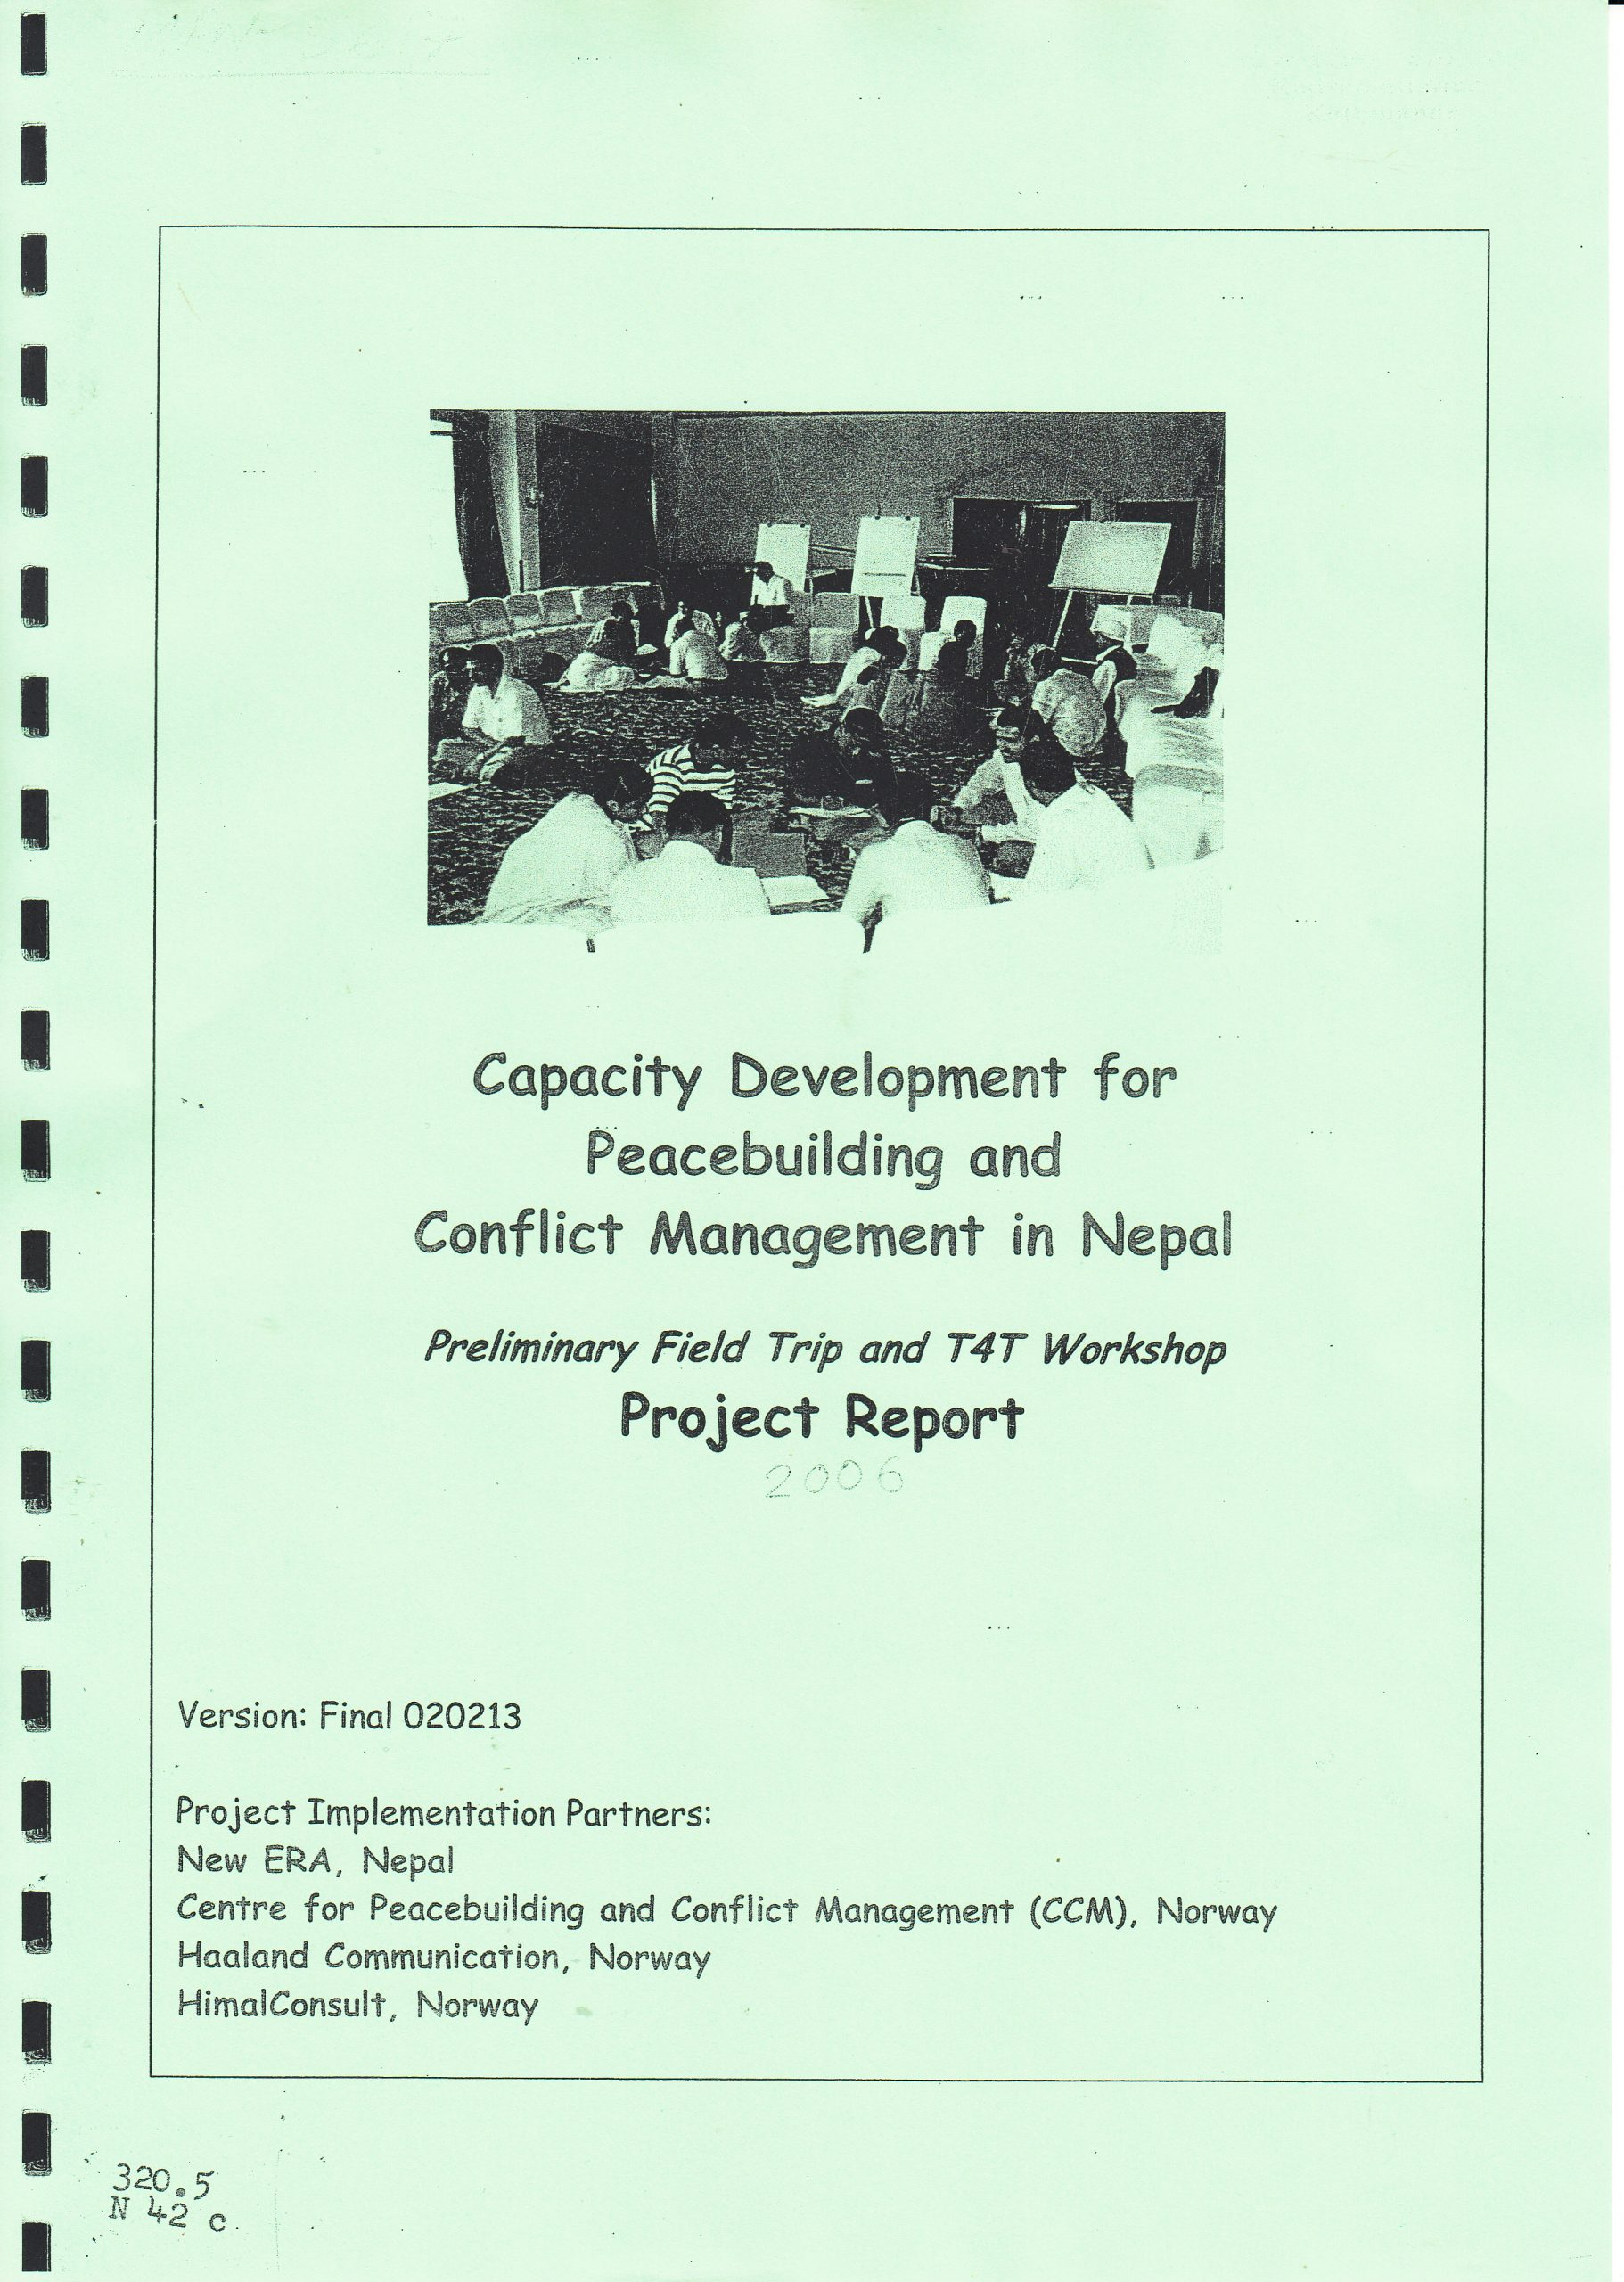 Capacity Development for Peace-building and Conflict Management in Nepal, Project Report